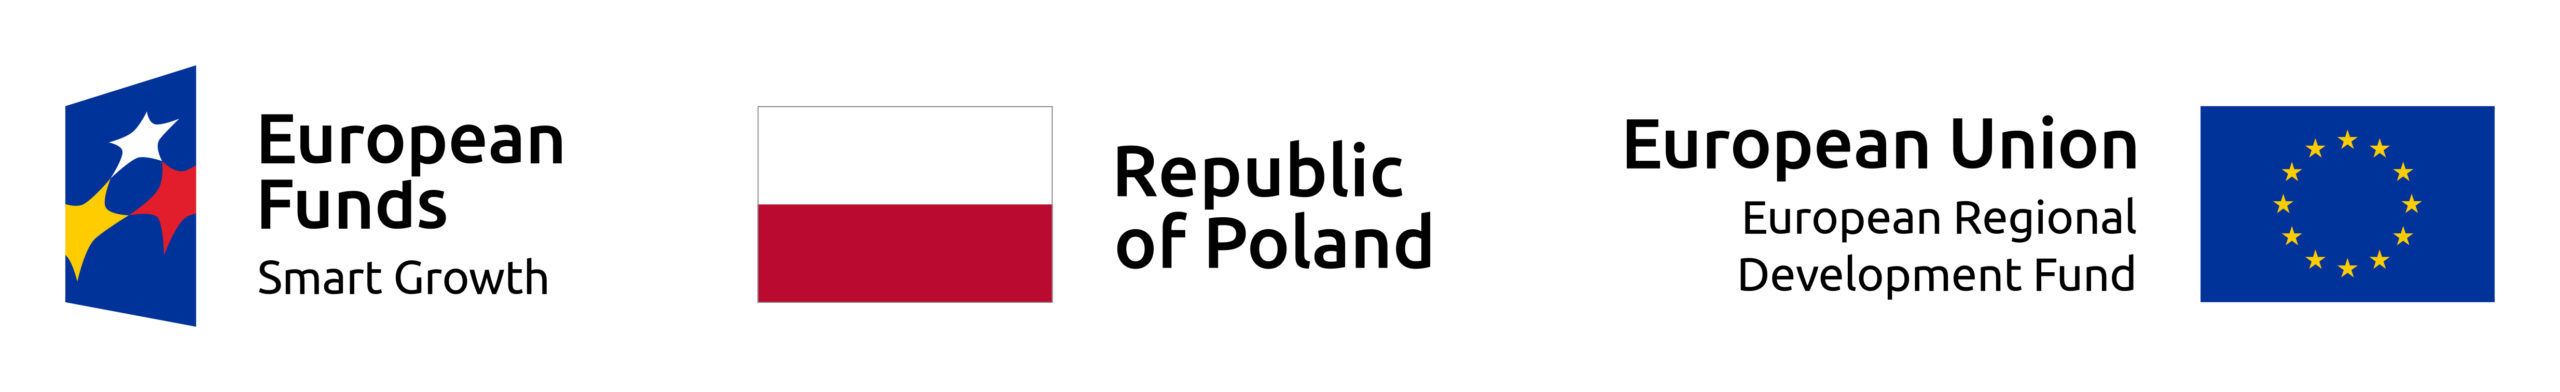 EU flag, flag of Republic of Poland, European Fund logo next to each other on a white background